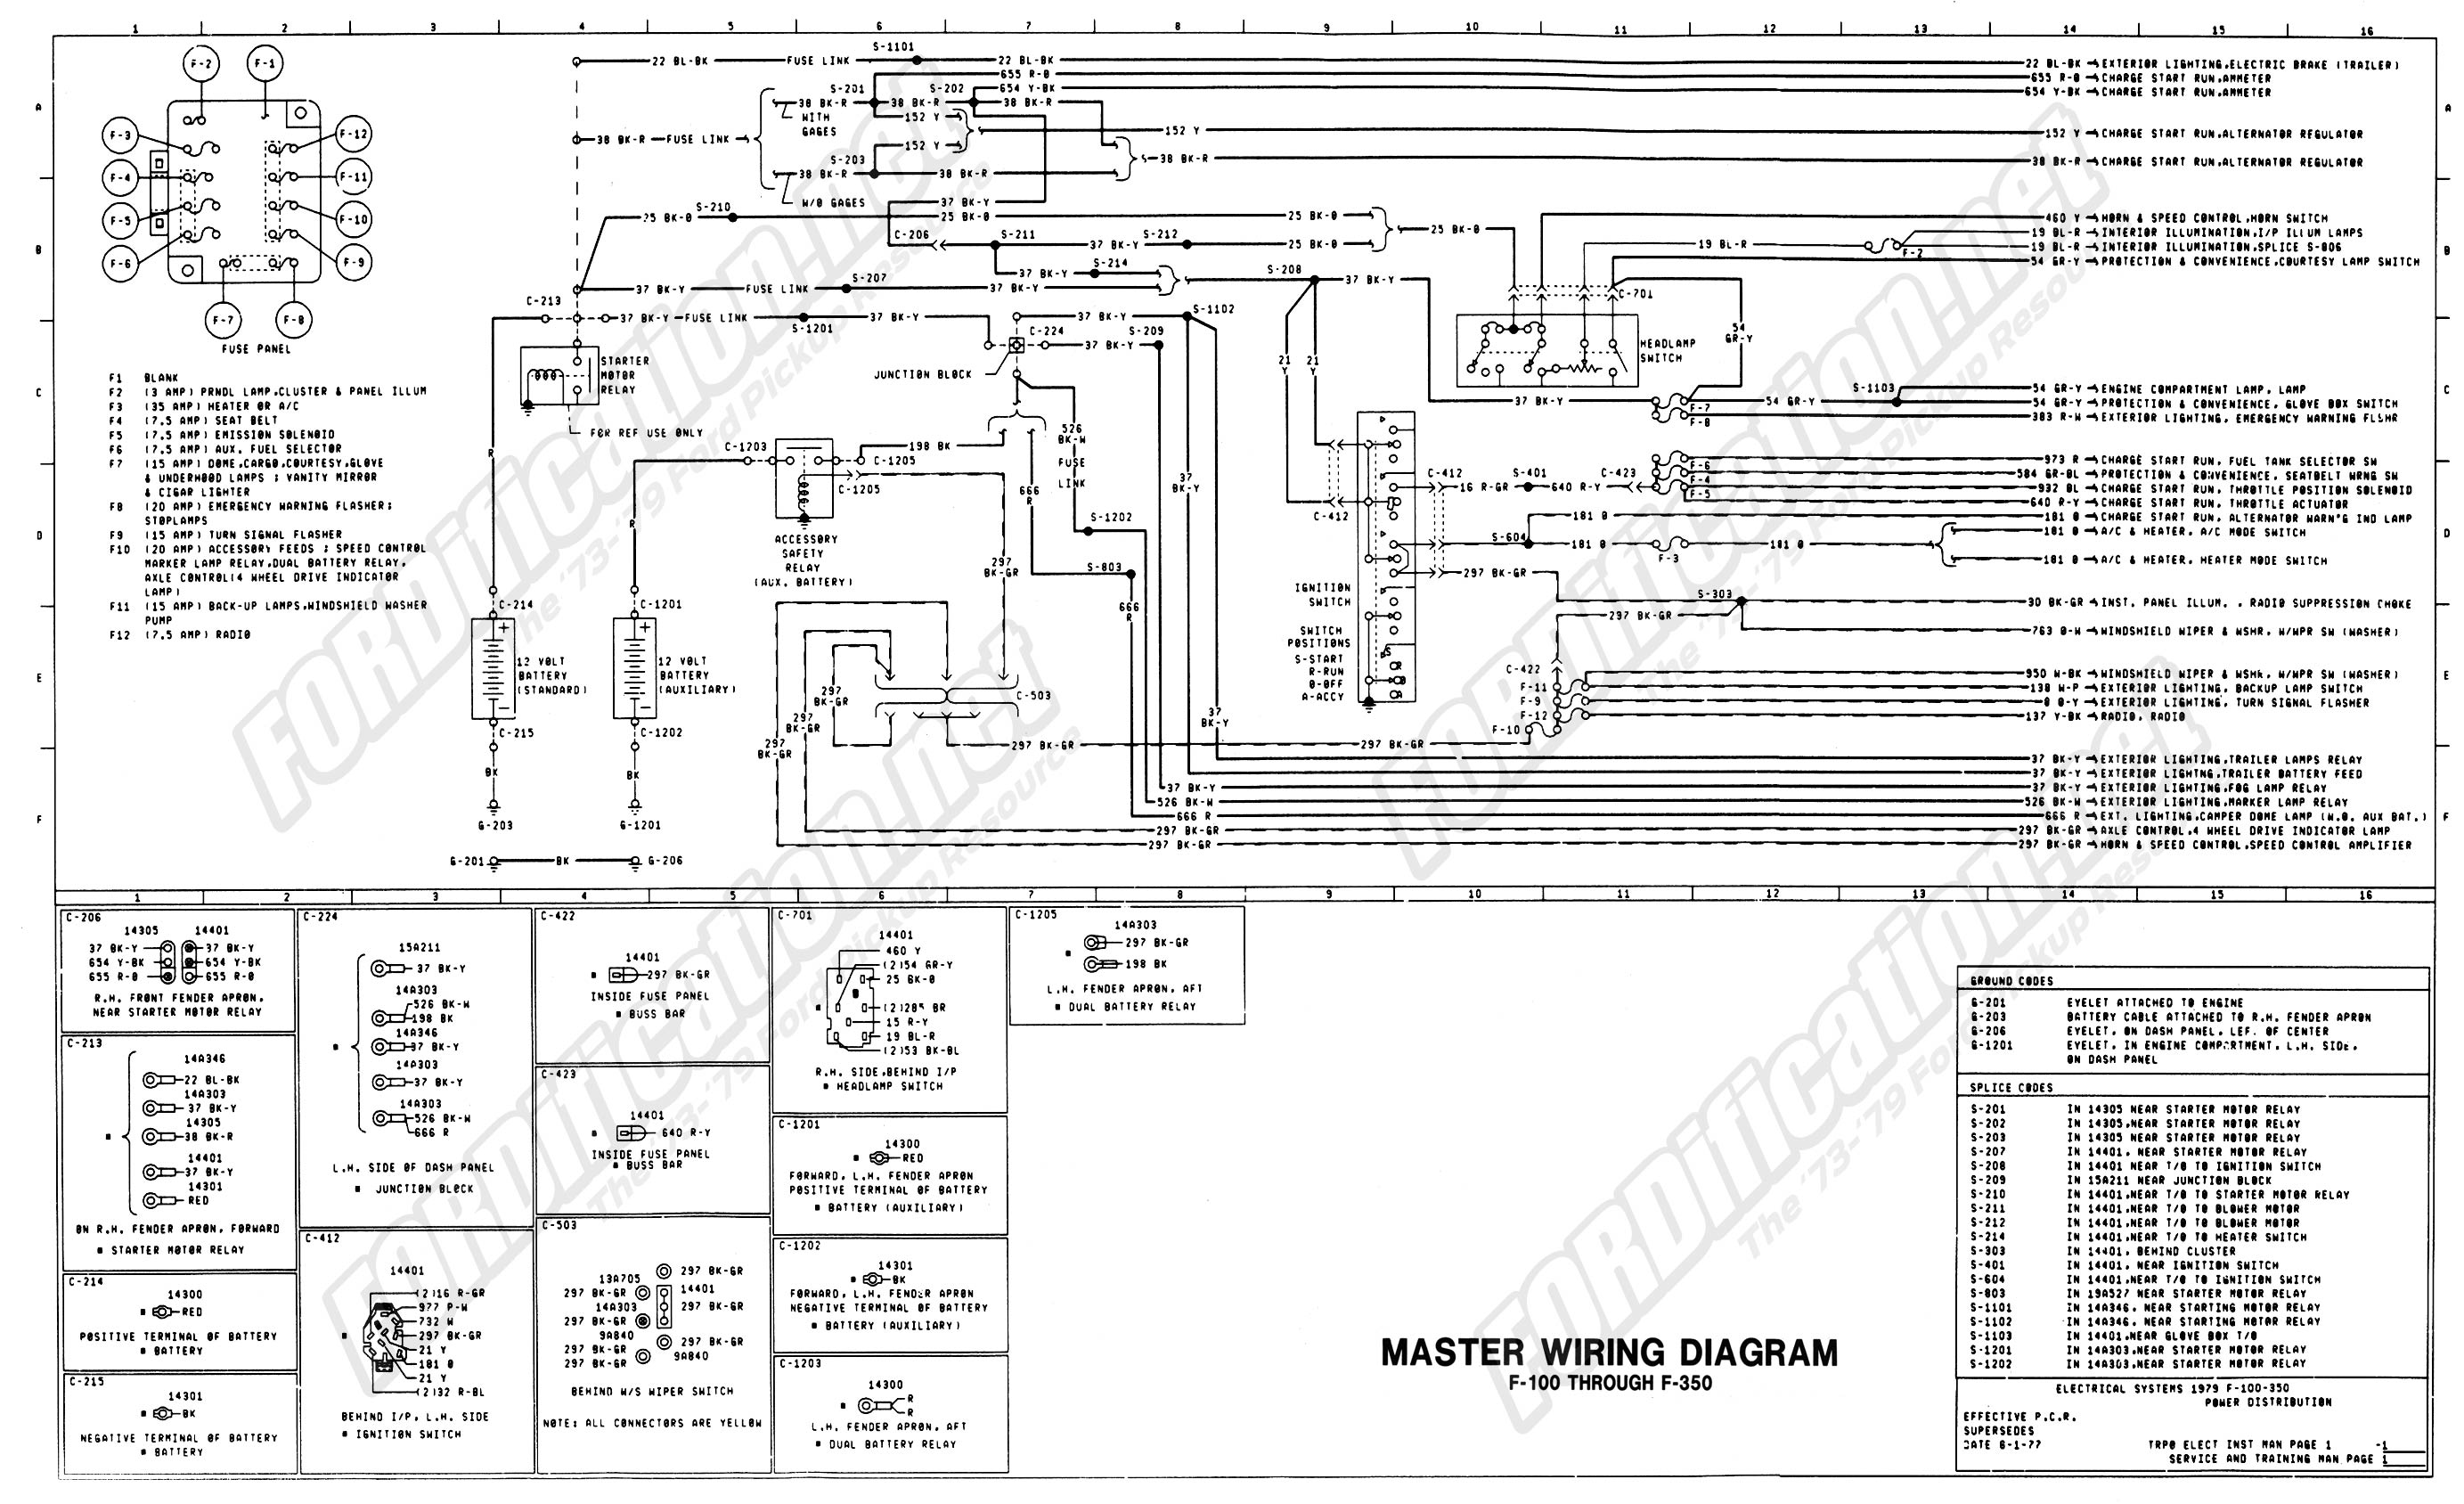 ford f 150 wiring harness diagram 1979 circuit diagram template1979 ford f 150 radio wiring for wiring diagram1976 ford f 150 wiring diagram data wiring